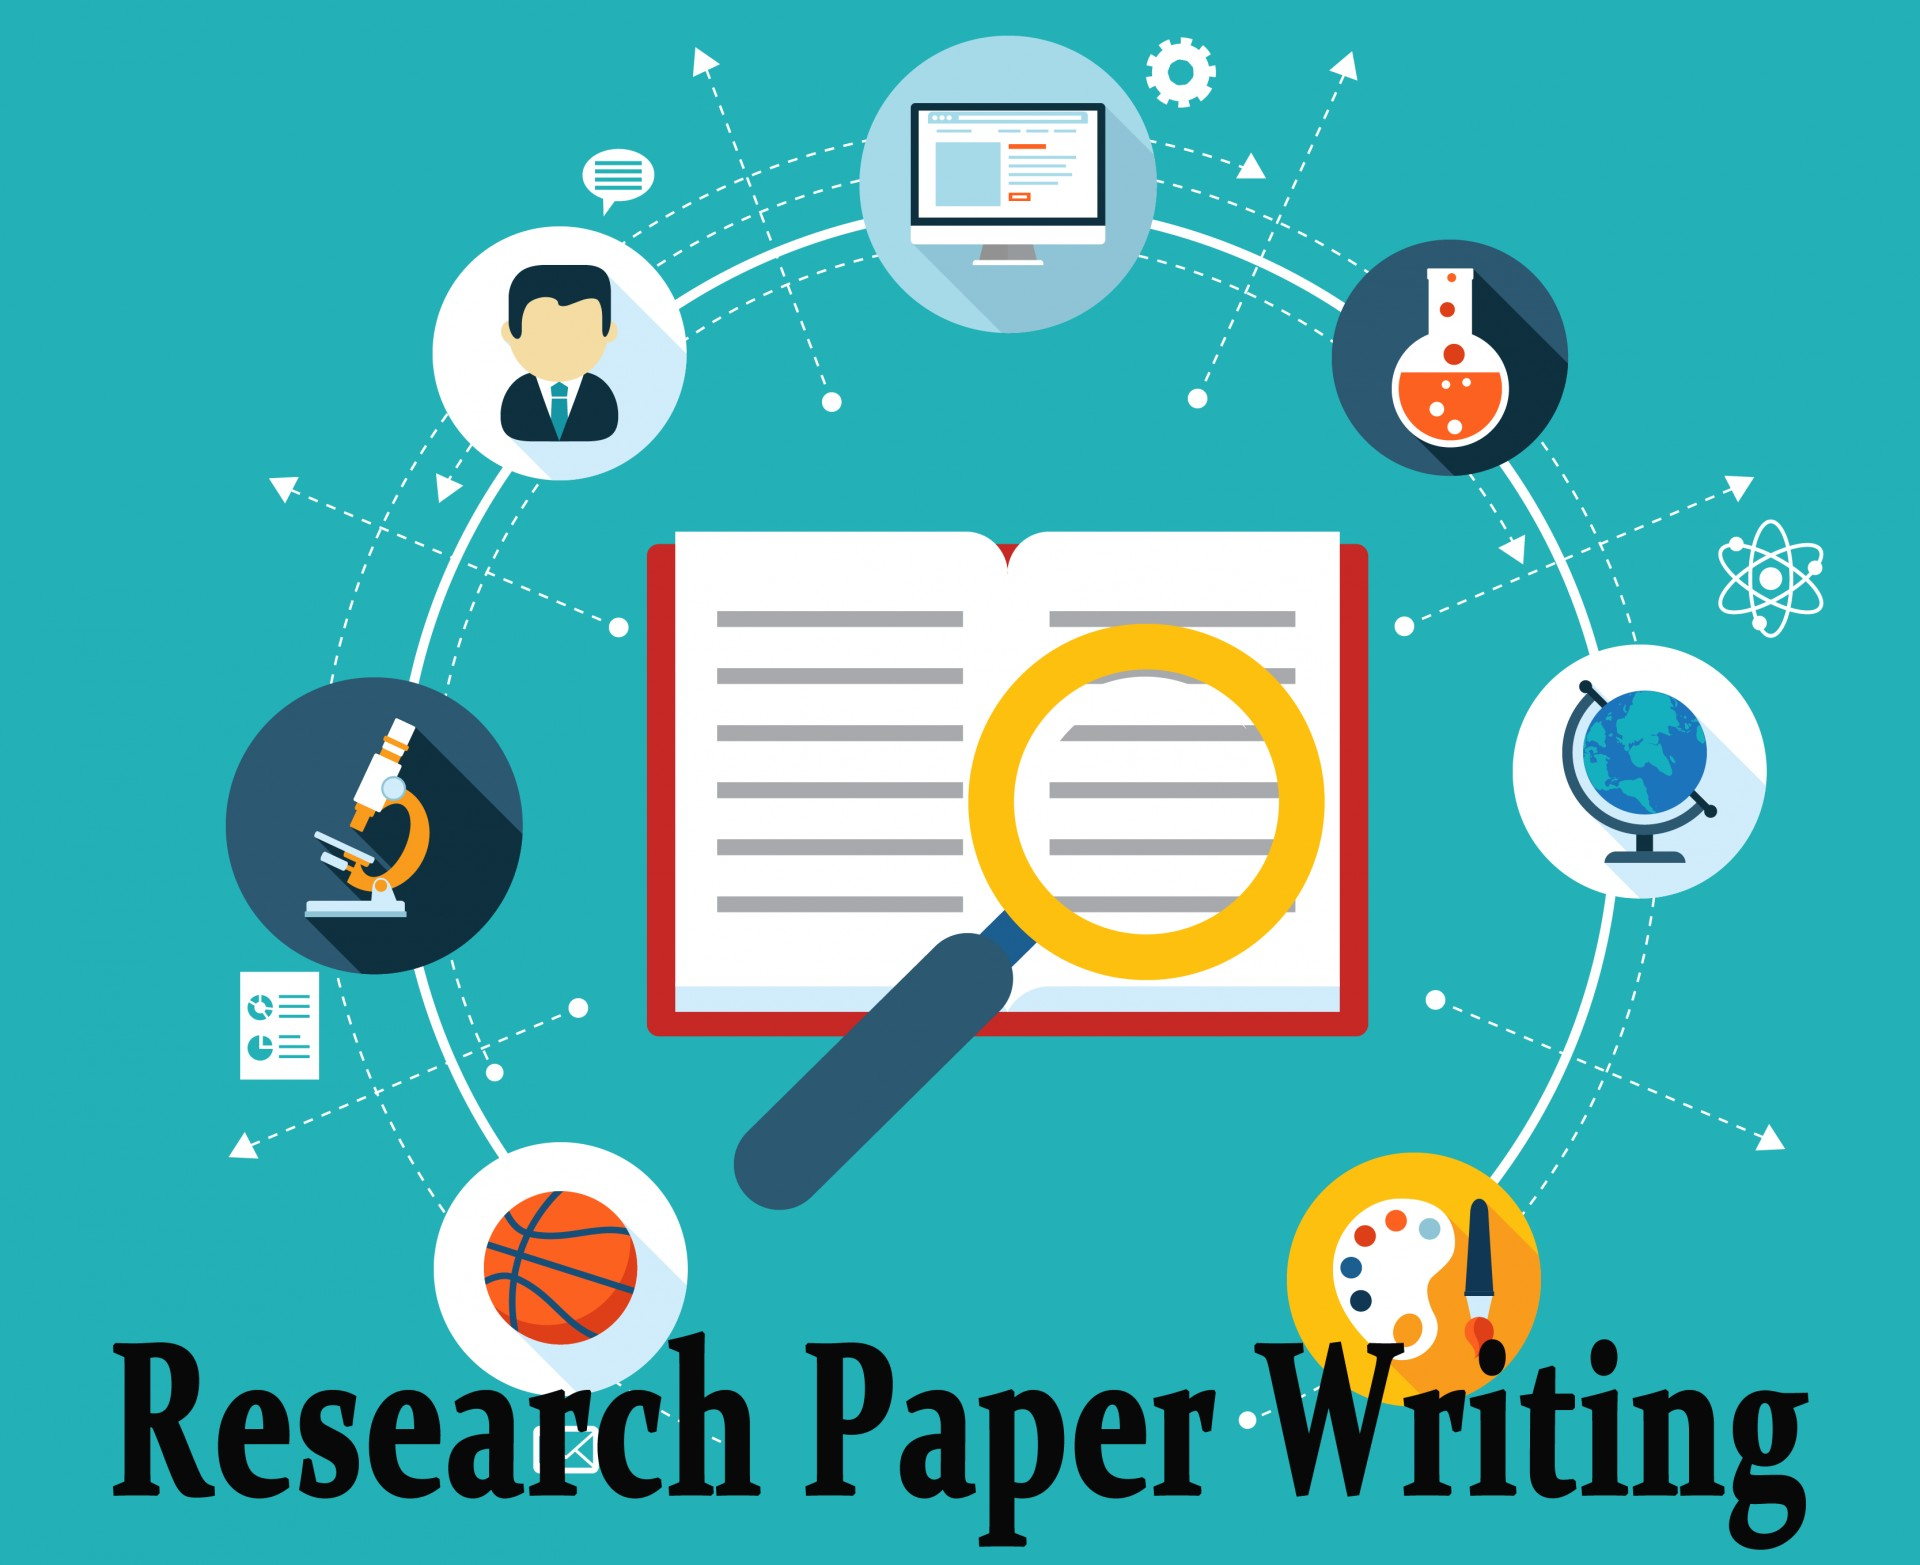 014 Write Researchs 503 Effective Research Writing Frightening Papers How To A History Paper Introduction Fast Youtube For Money 1920